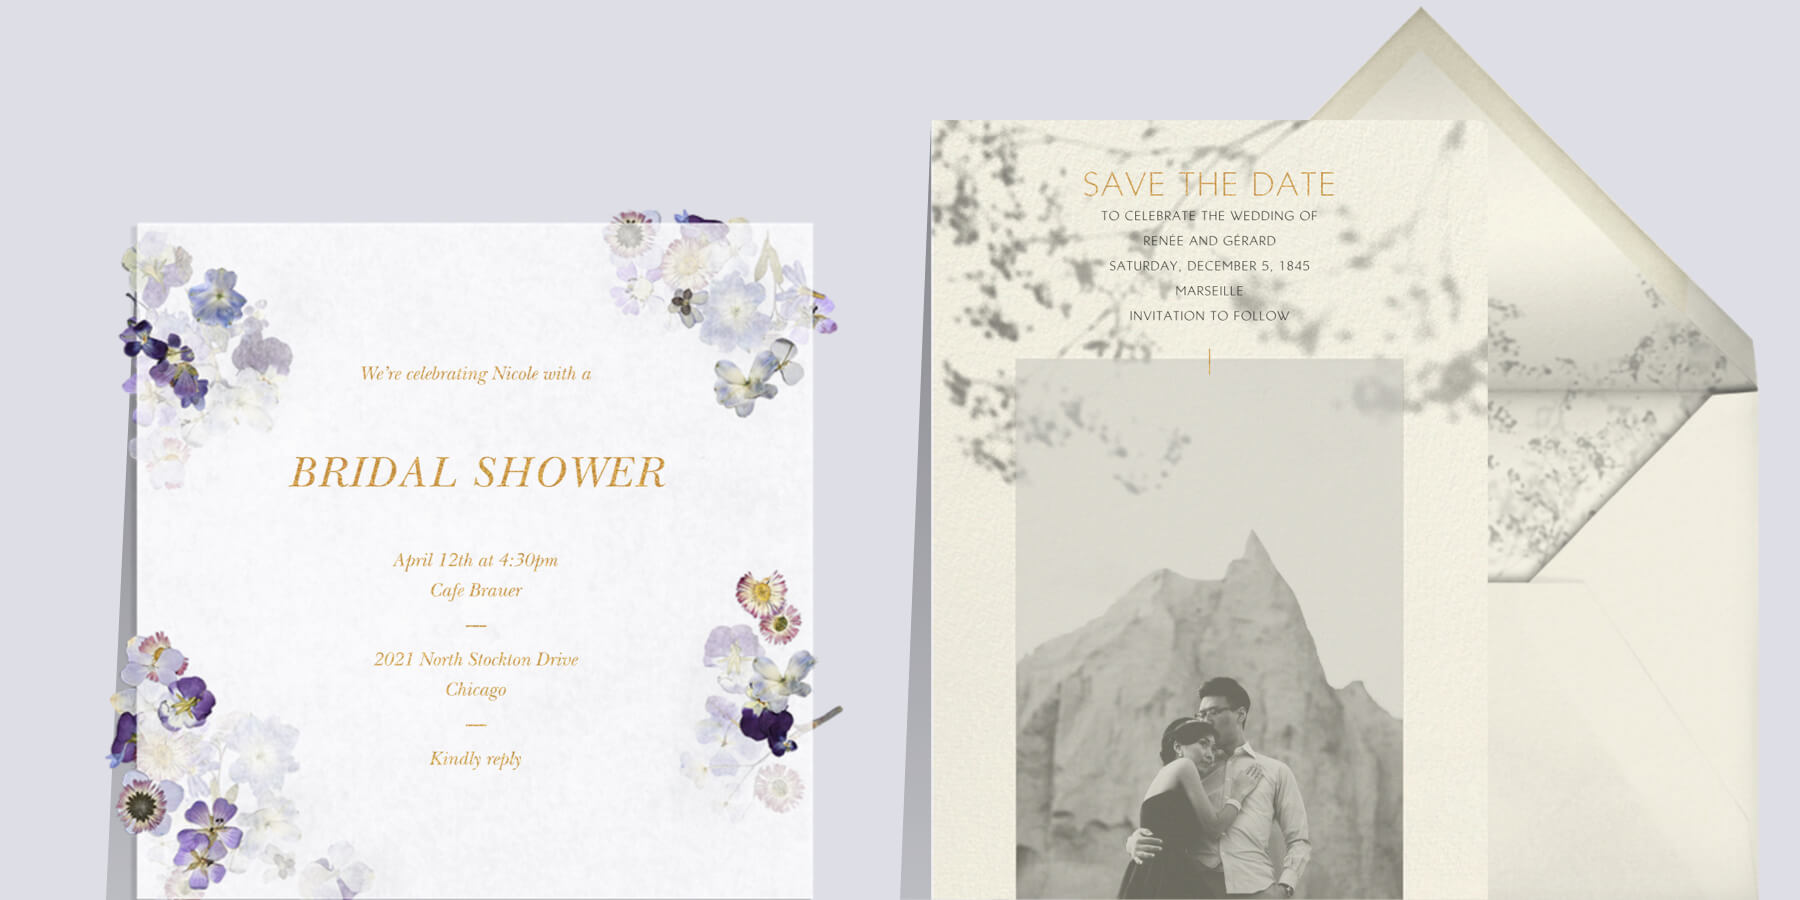 Left: Pressed in Vellum wedding invitation by Paperless Post. Right: Gentle Shadow wedding invitation by Paperless Post